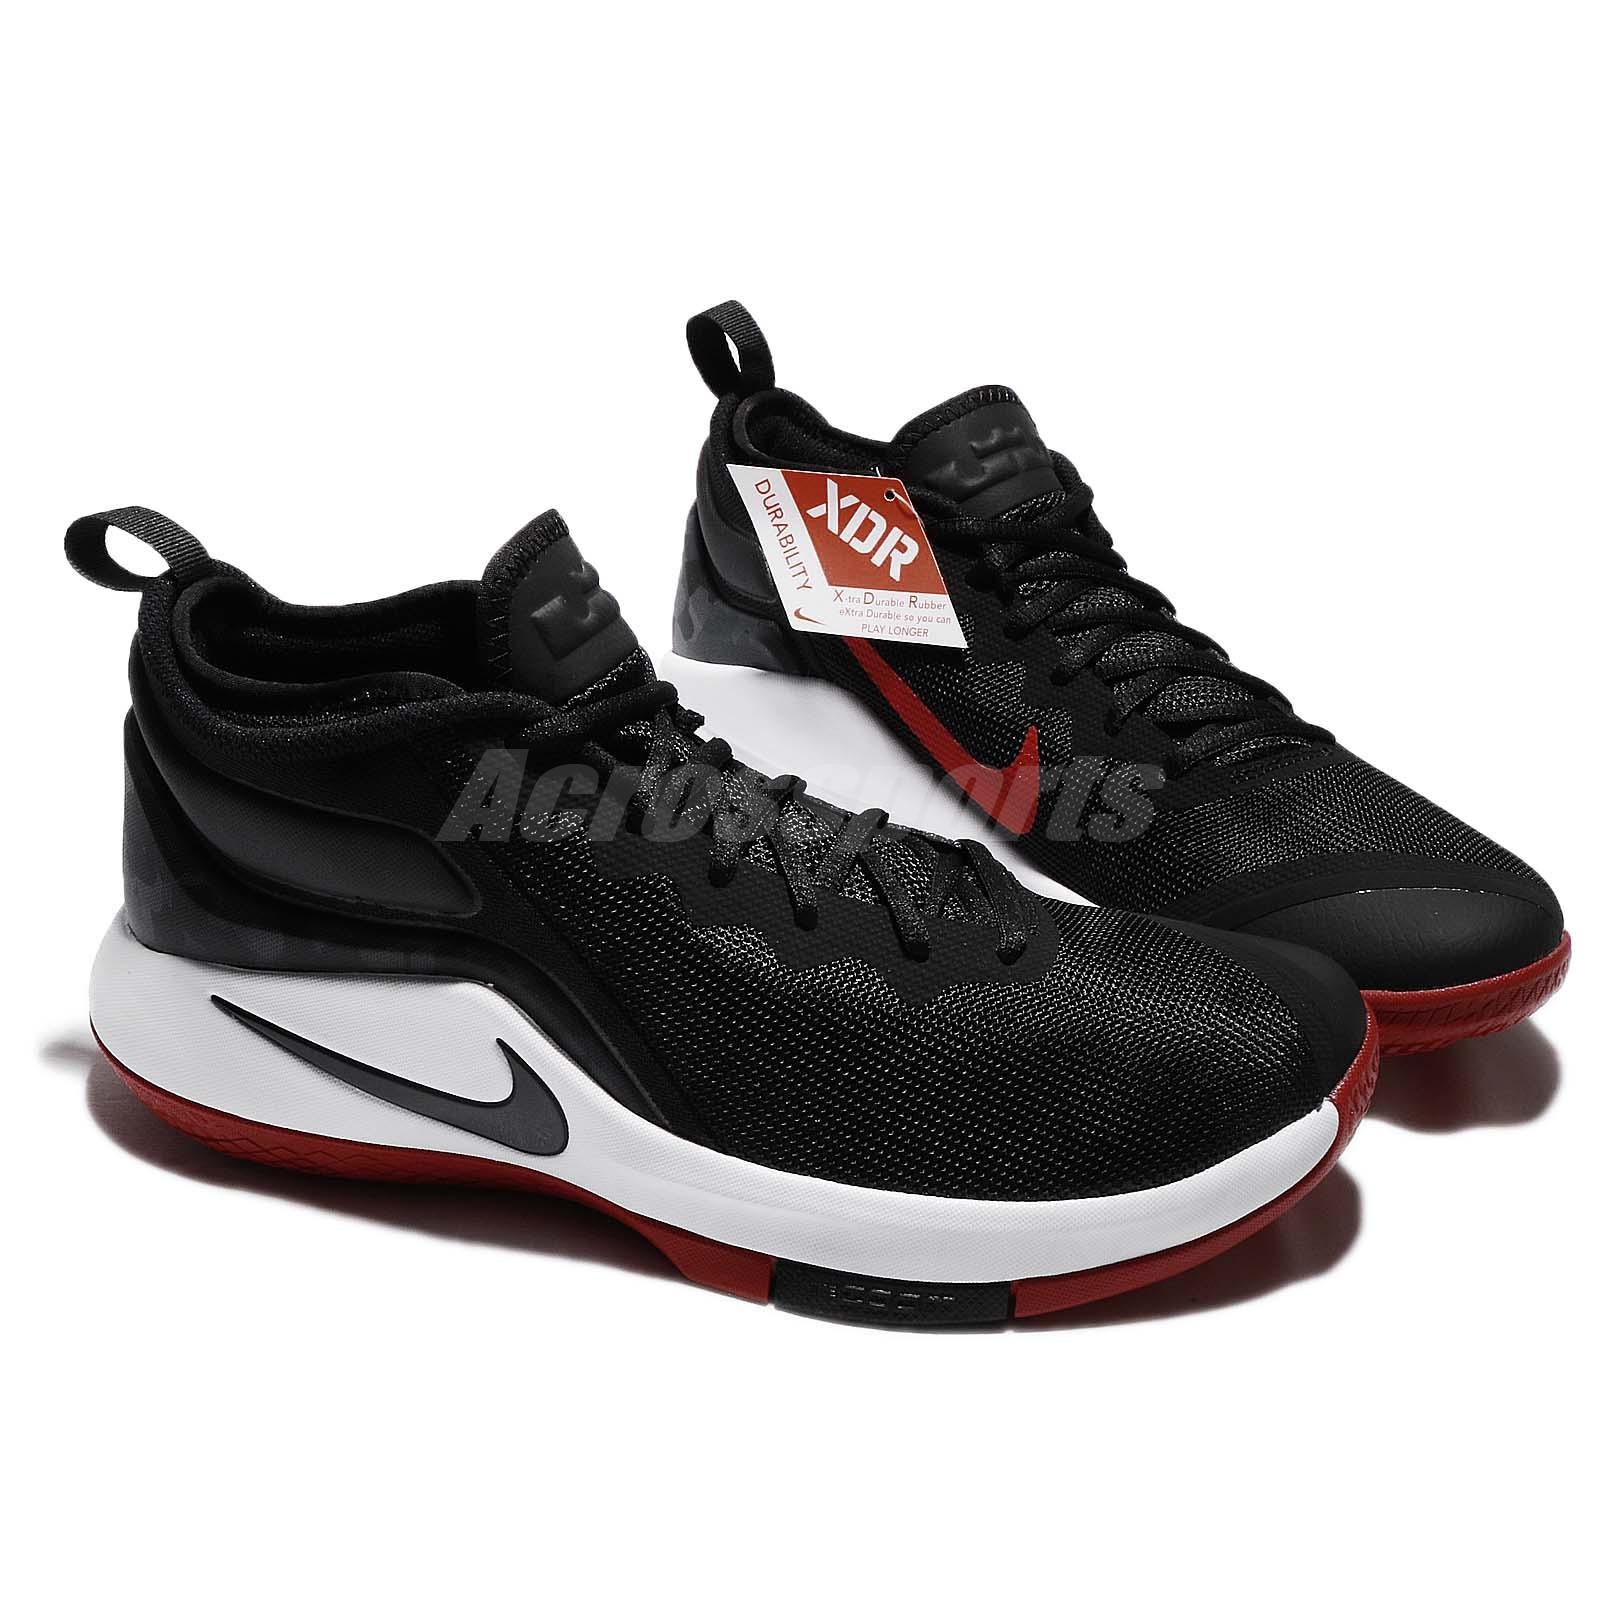 fd7a7e106843 ... switzerland nike lebron witness ii ep 2 james bred black red men  basketball shoe 21619 ee7ab